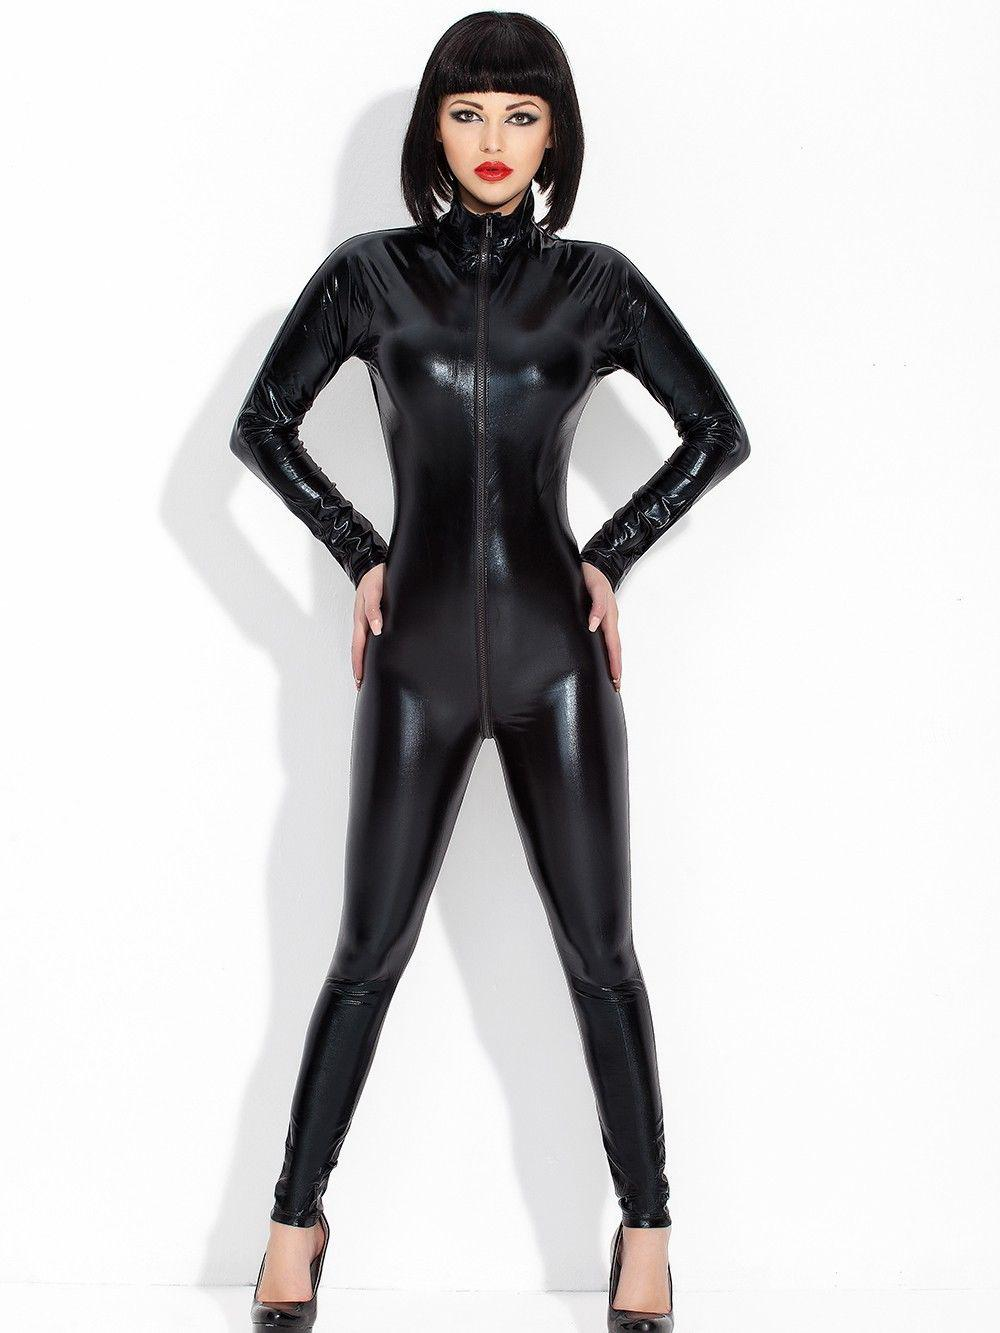 sexy deutsche fickt geil in catsuit dress